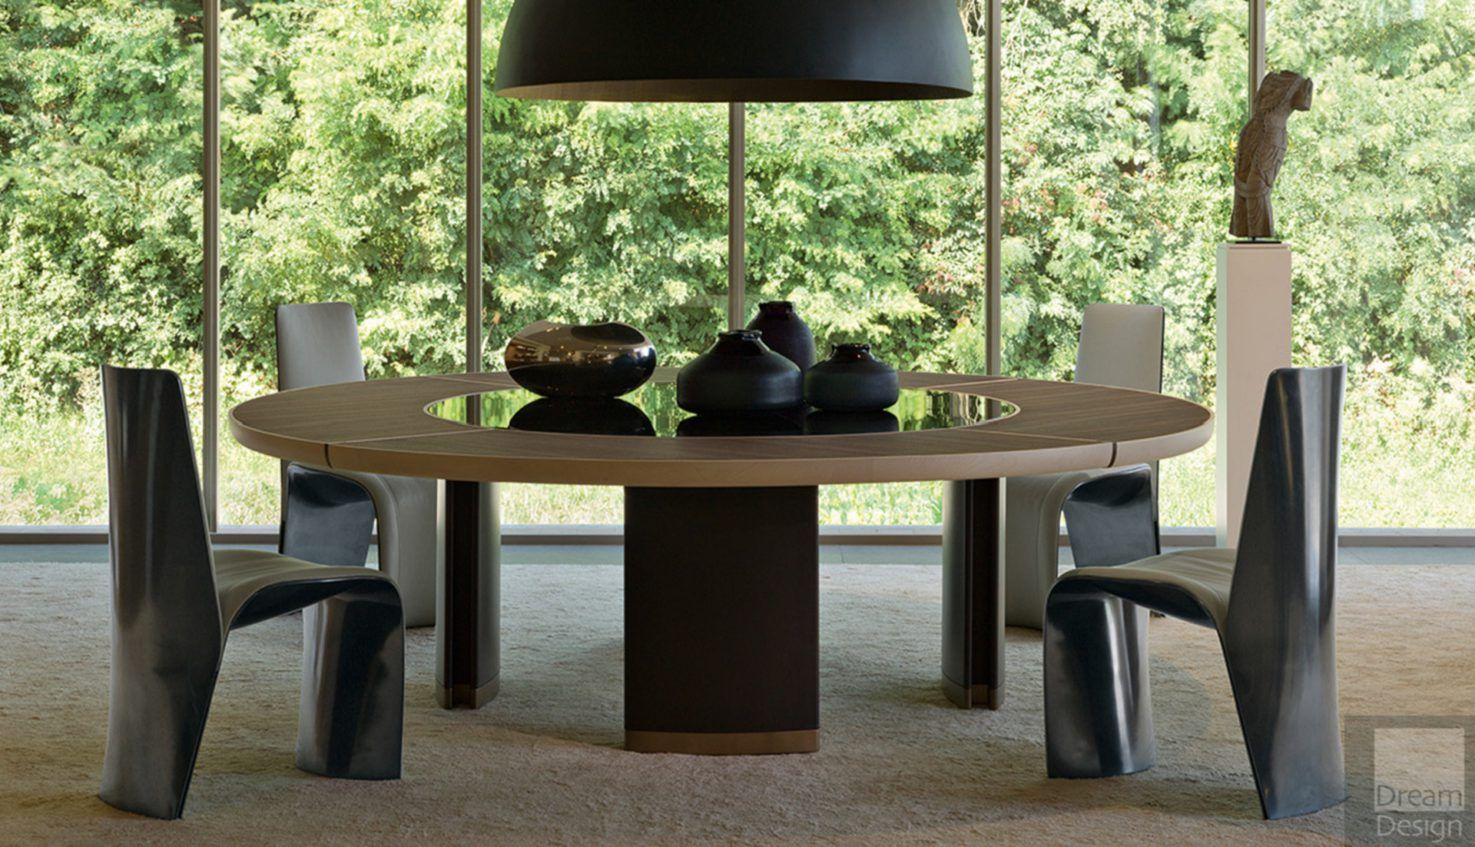 Giorgetti Gordon dining table with lazy susan